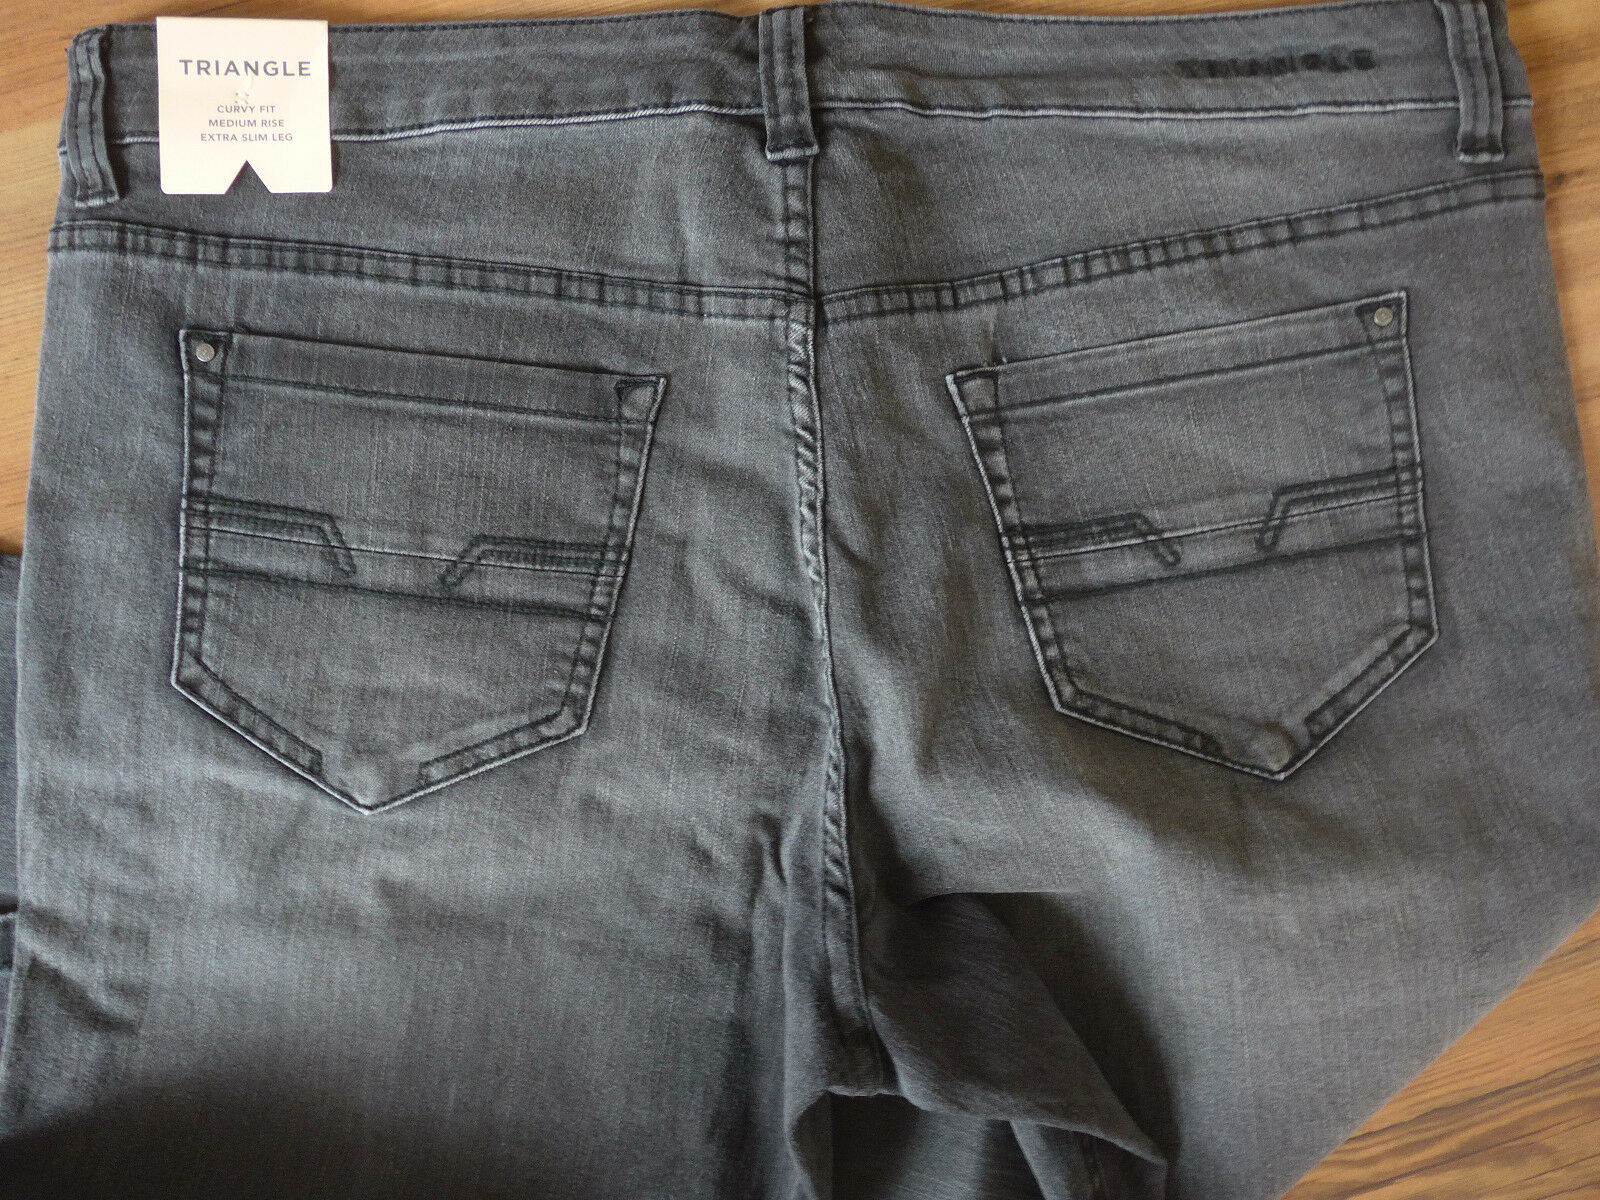 TRIANGLE BY S.OLIVER Jeans Pantaloni Antracite Antracite Antracite Tgl 40 - 50 Taglia Corta (233) 30 4eab0a